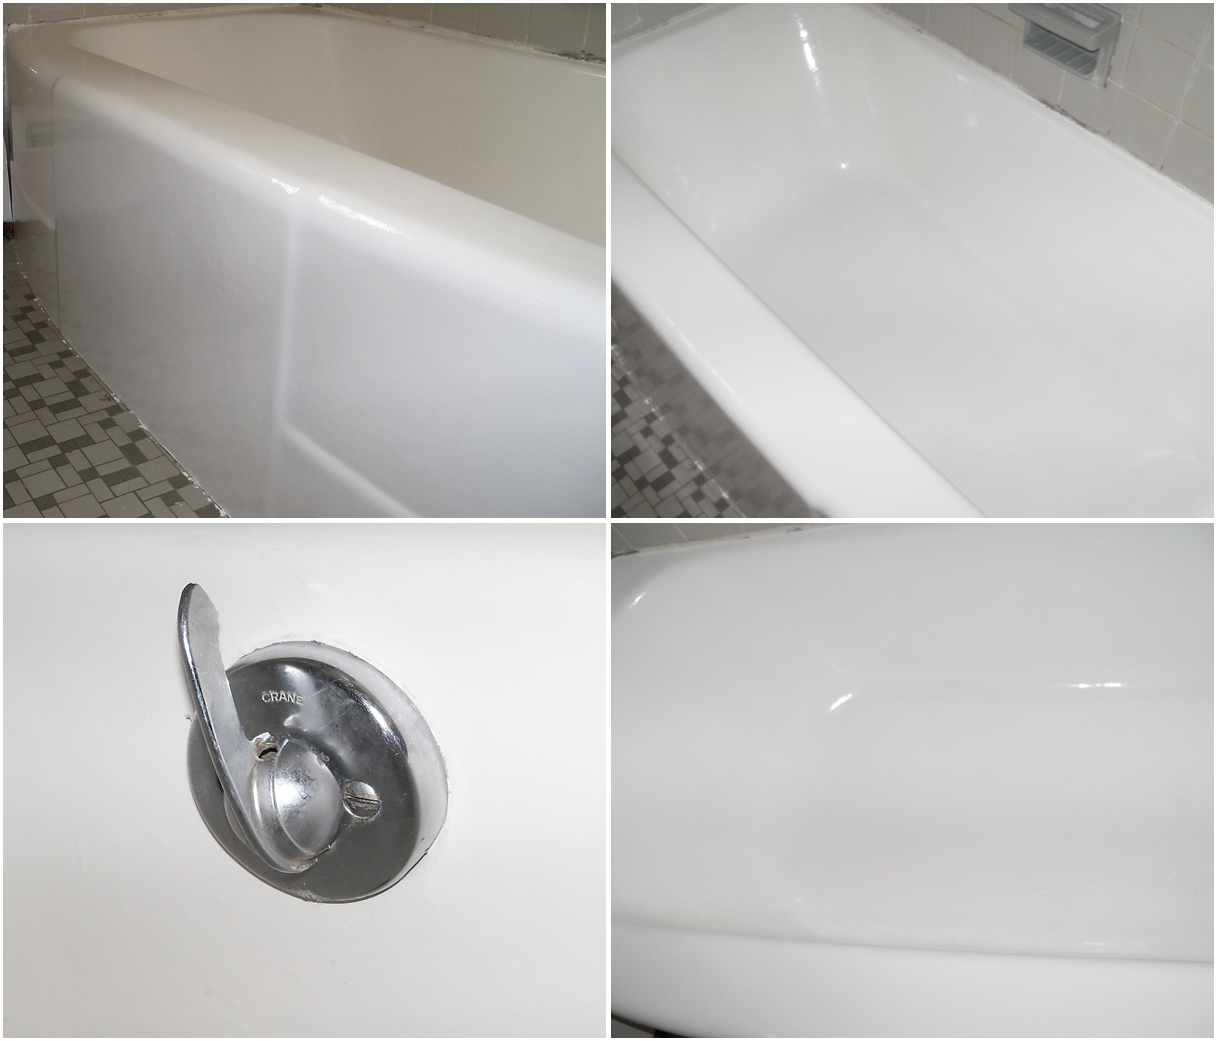 at and countertop paint on how remodelaholic ideas pinterest countertops laminate bathtub makeover painted repaint from bathroom terrific minimalist sink refinish best to